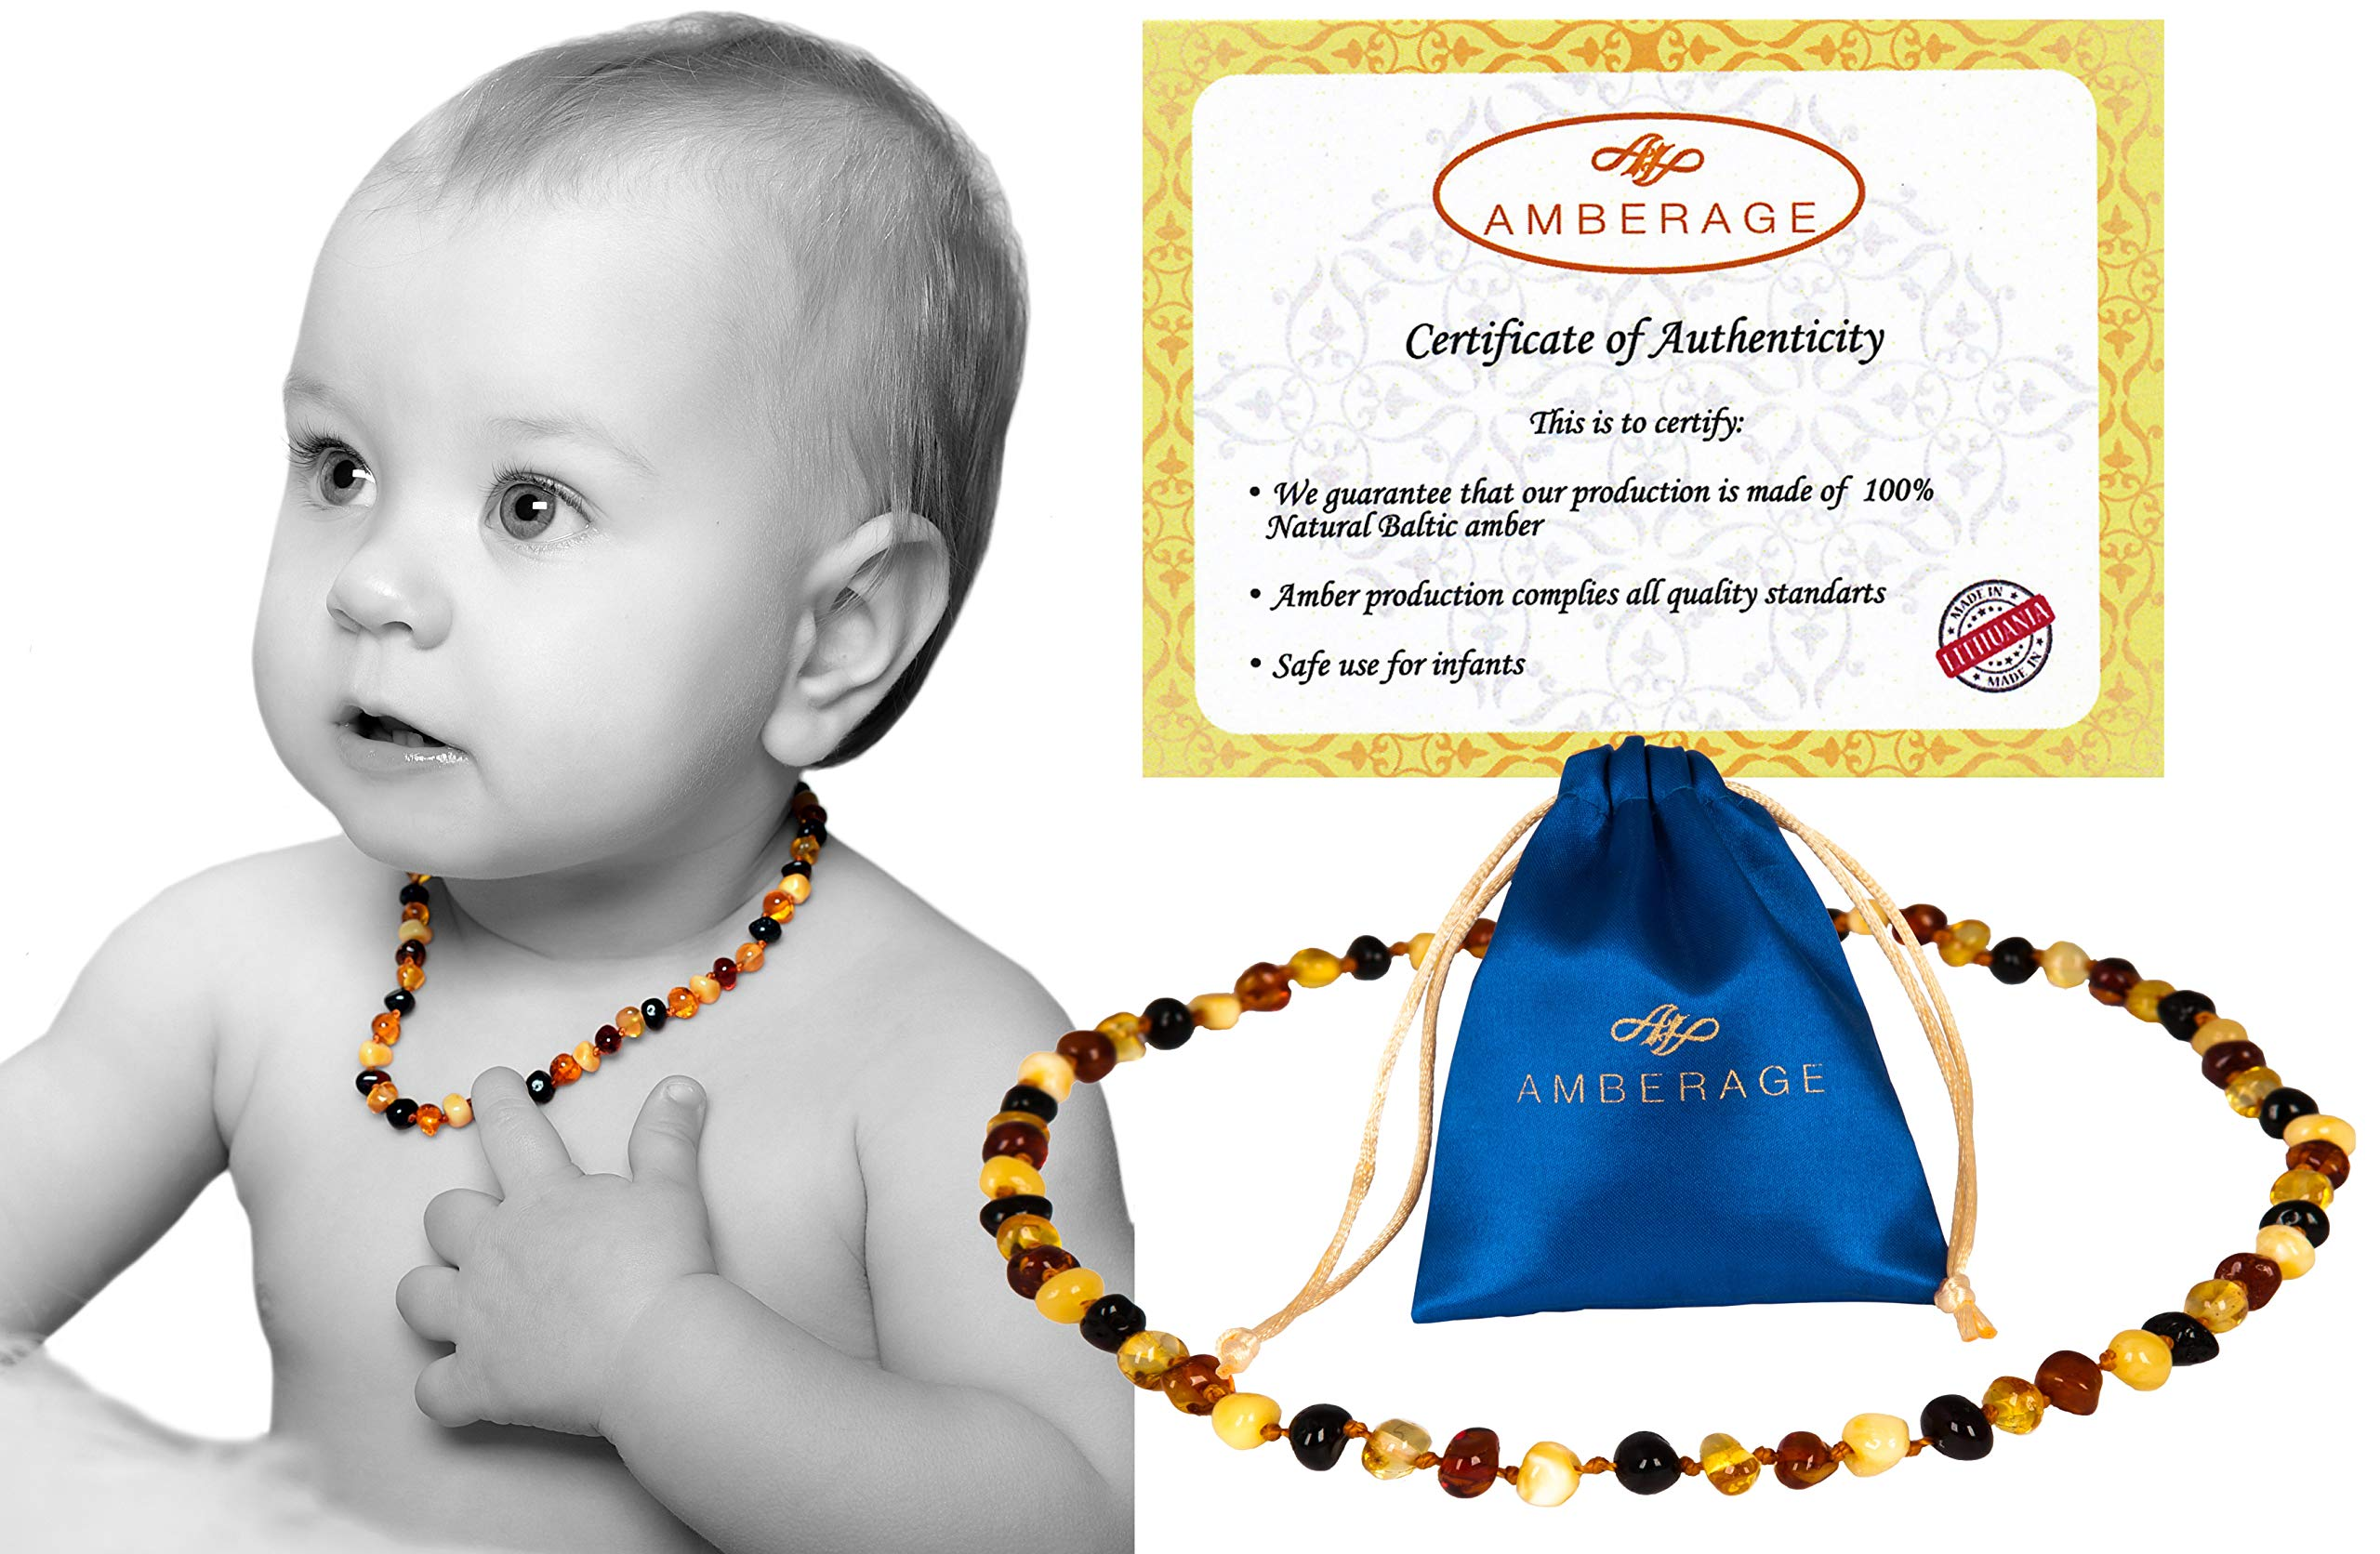 AMBERAGE Baltic Amber Baby Teething Necklaces (Unisex) Anti Flammatory, Drooling & Teething Pain Reduce Properties, Certificated Baroque Beads ( Multi ),Quality Guaranteed by AMBERAGE